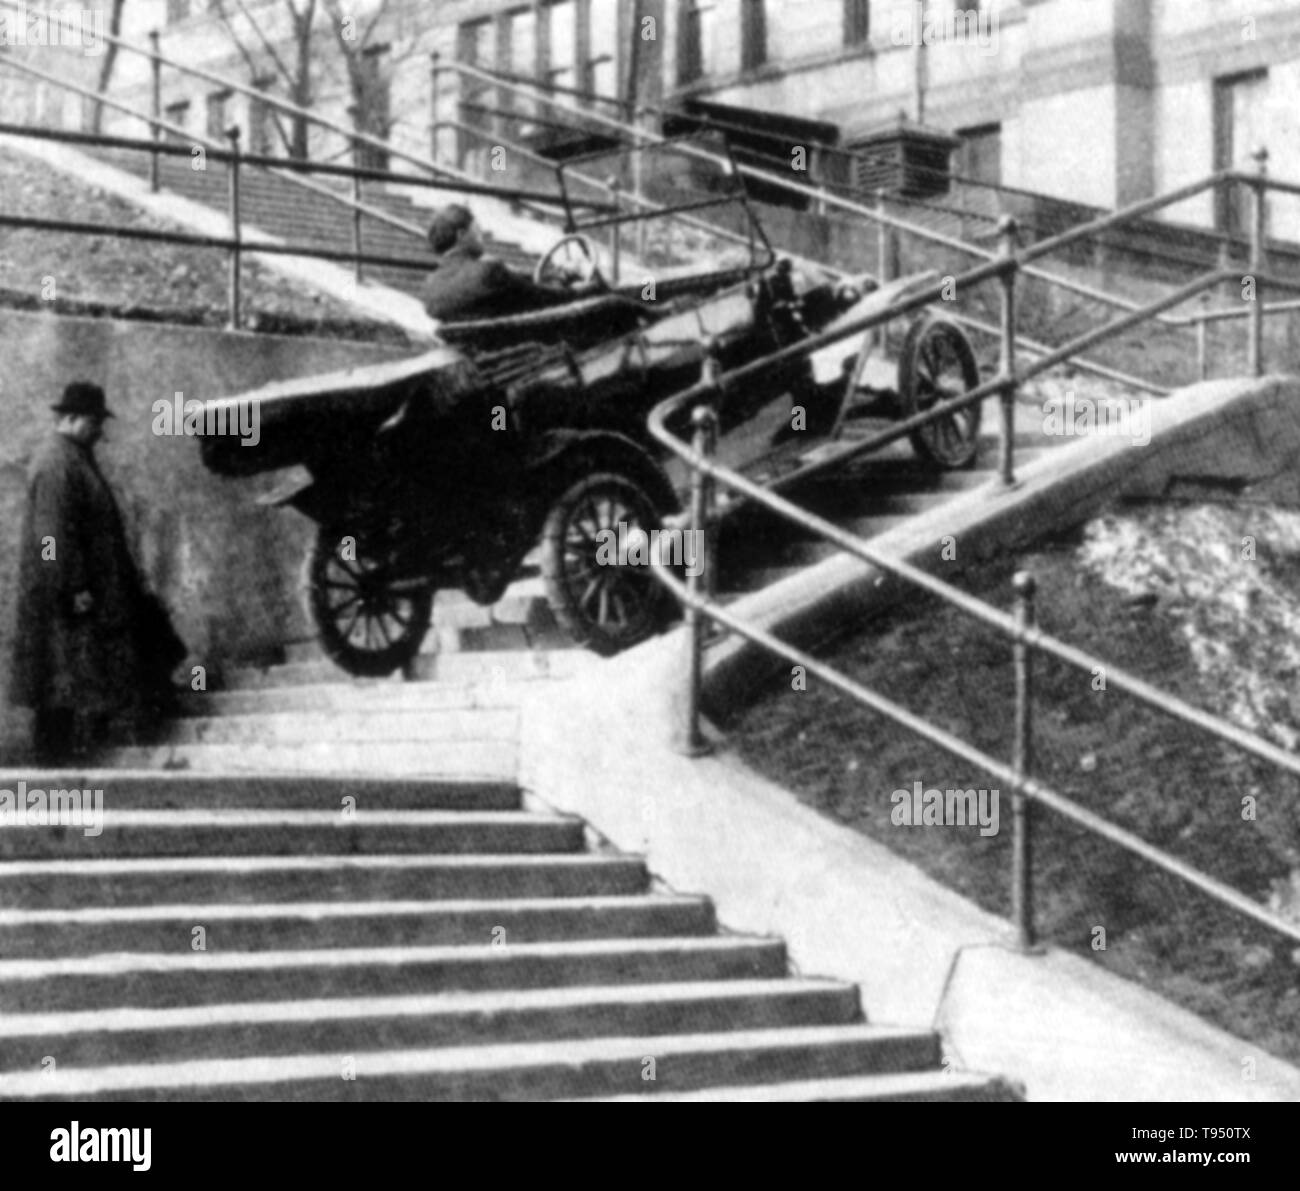 Model T ascended three flights of steps in Duluth, Minnesota, winning its owner a $100 bet. The Ford Model T (colloquially known as the Tin Lizzie, Leaping Lena, or flivver) is an automobile that was produced by Ford Motor Company from October 1, 1908, to May 26, 1927. It is generally regarded as the first affordable automobile, the car that opened travel to the common middle-class American; some of this was because of Ford's efficient fabrication, including assembly line production instead of individual hand crafting. No photographer credited, 1910s. - Stock Image